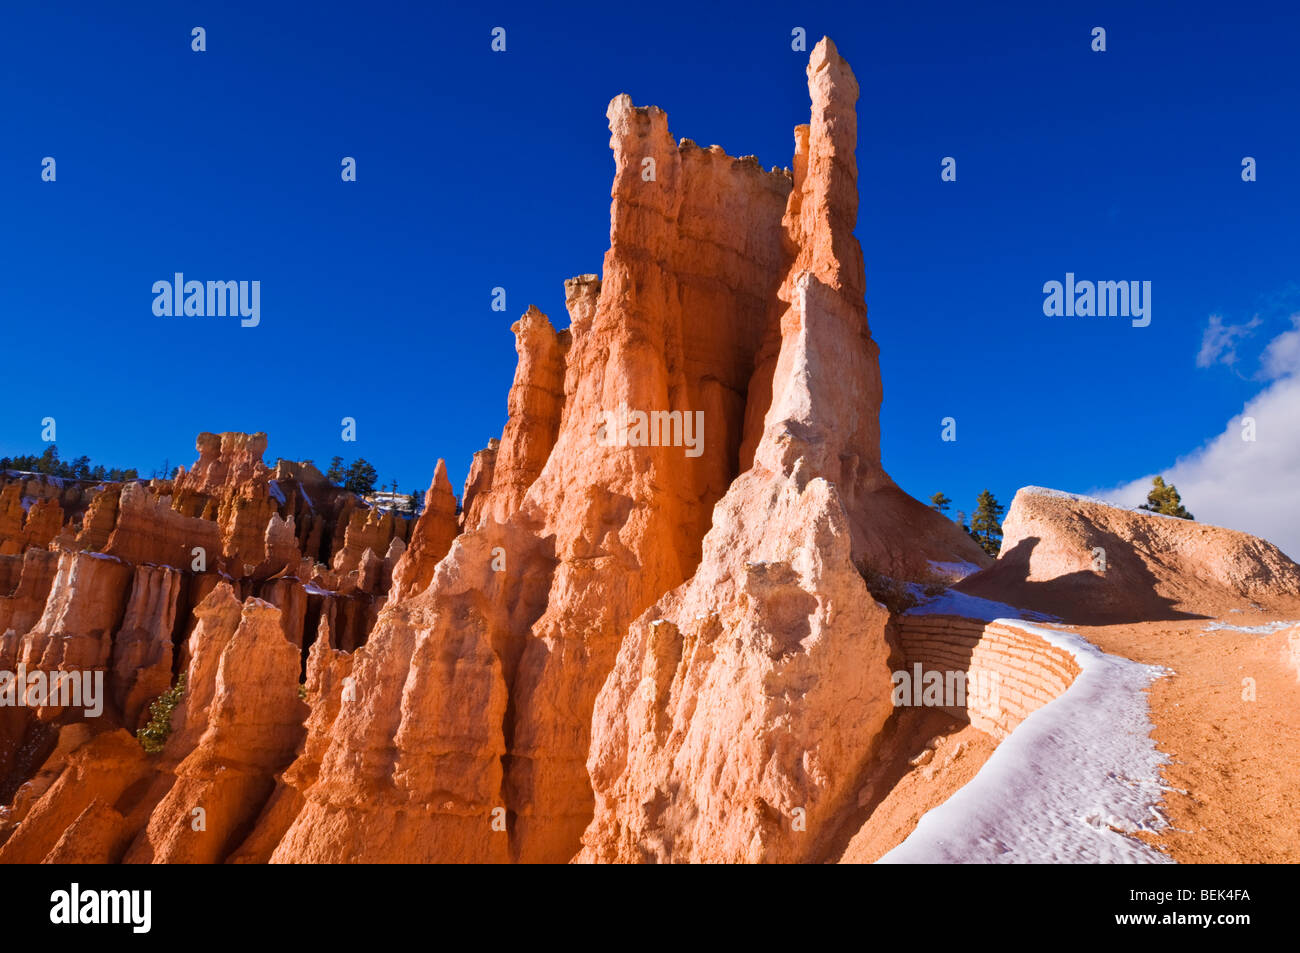 Rock formations along the Queens Garden Trail, Bryce Canyon National Park, Utah - Stock Image